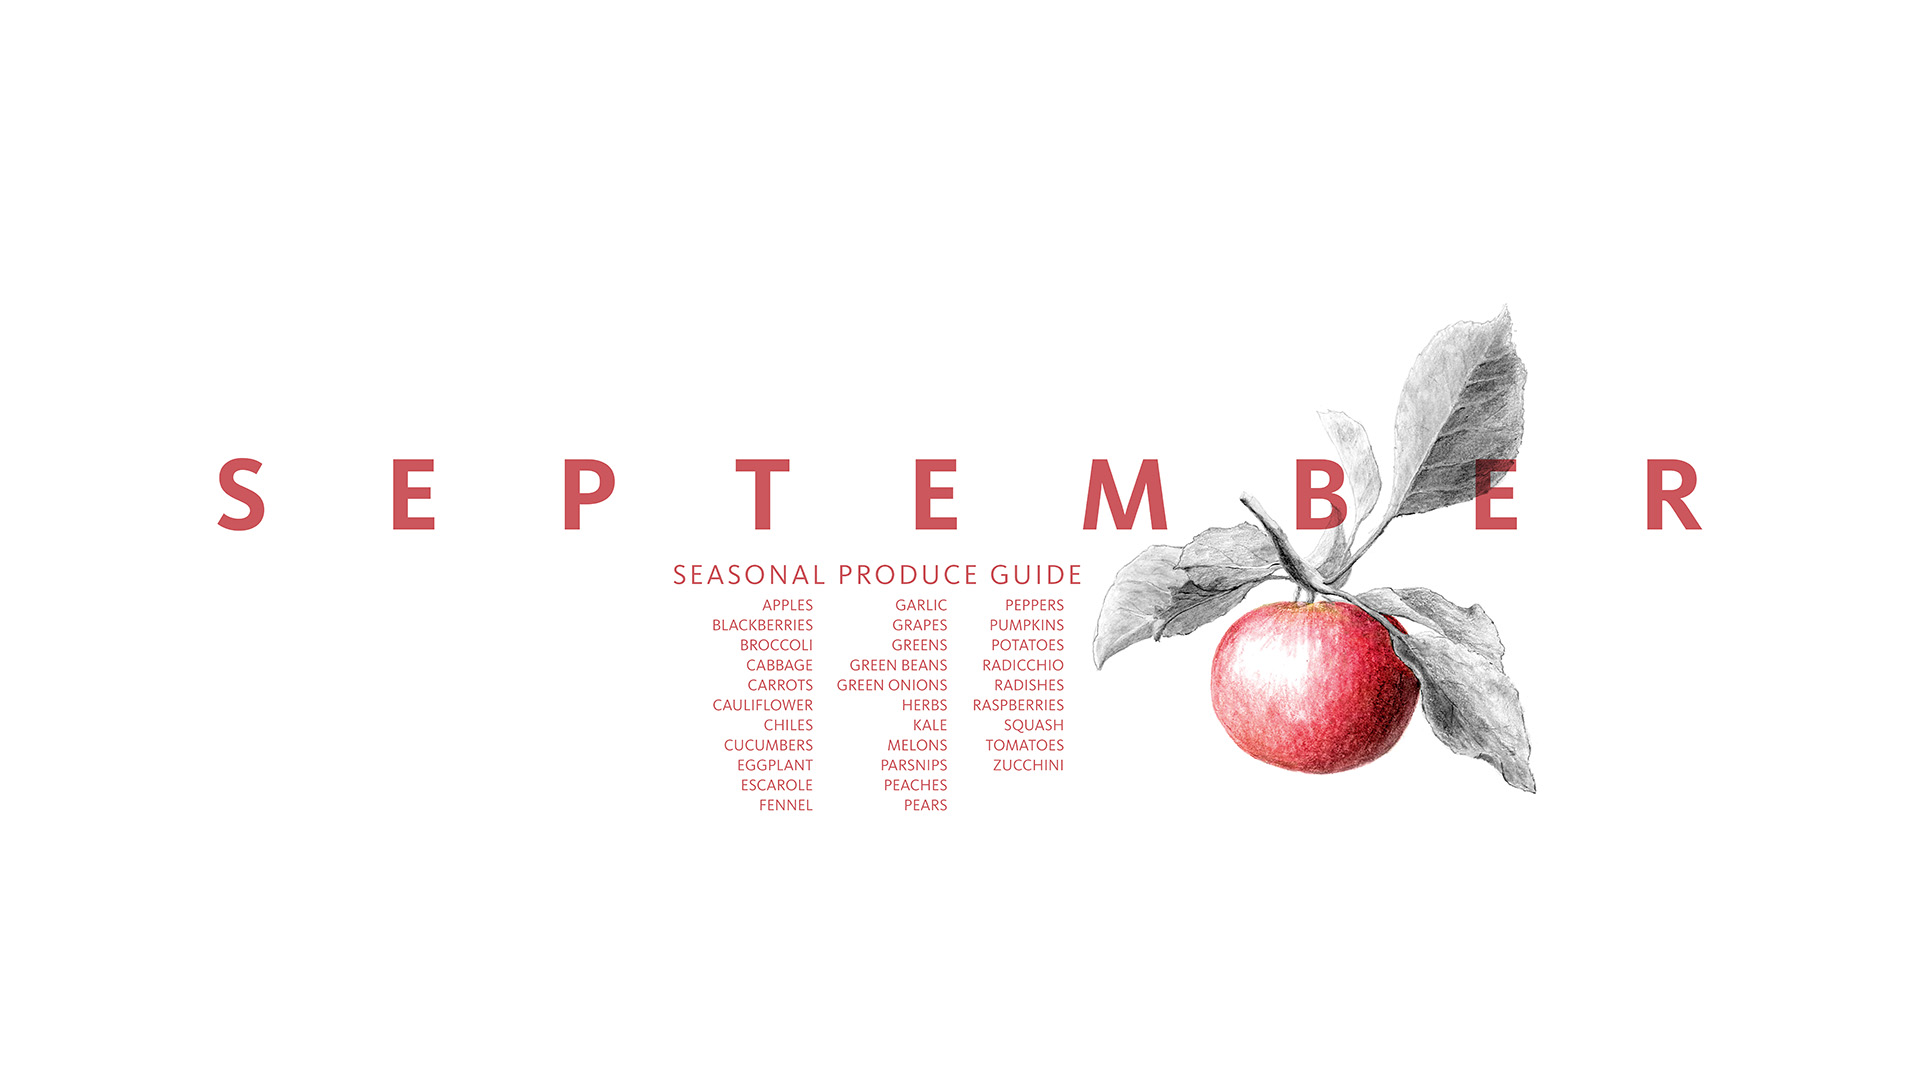 Here's a great list of what's fresh to eat and cook with for the month of September.